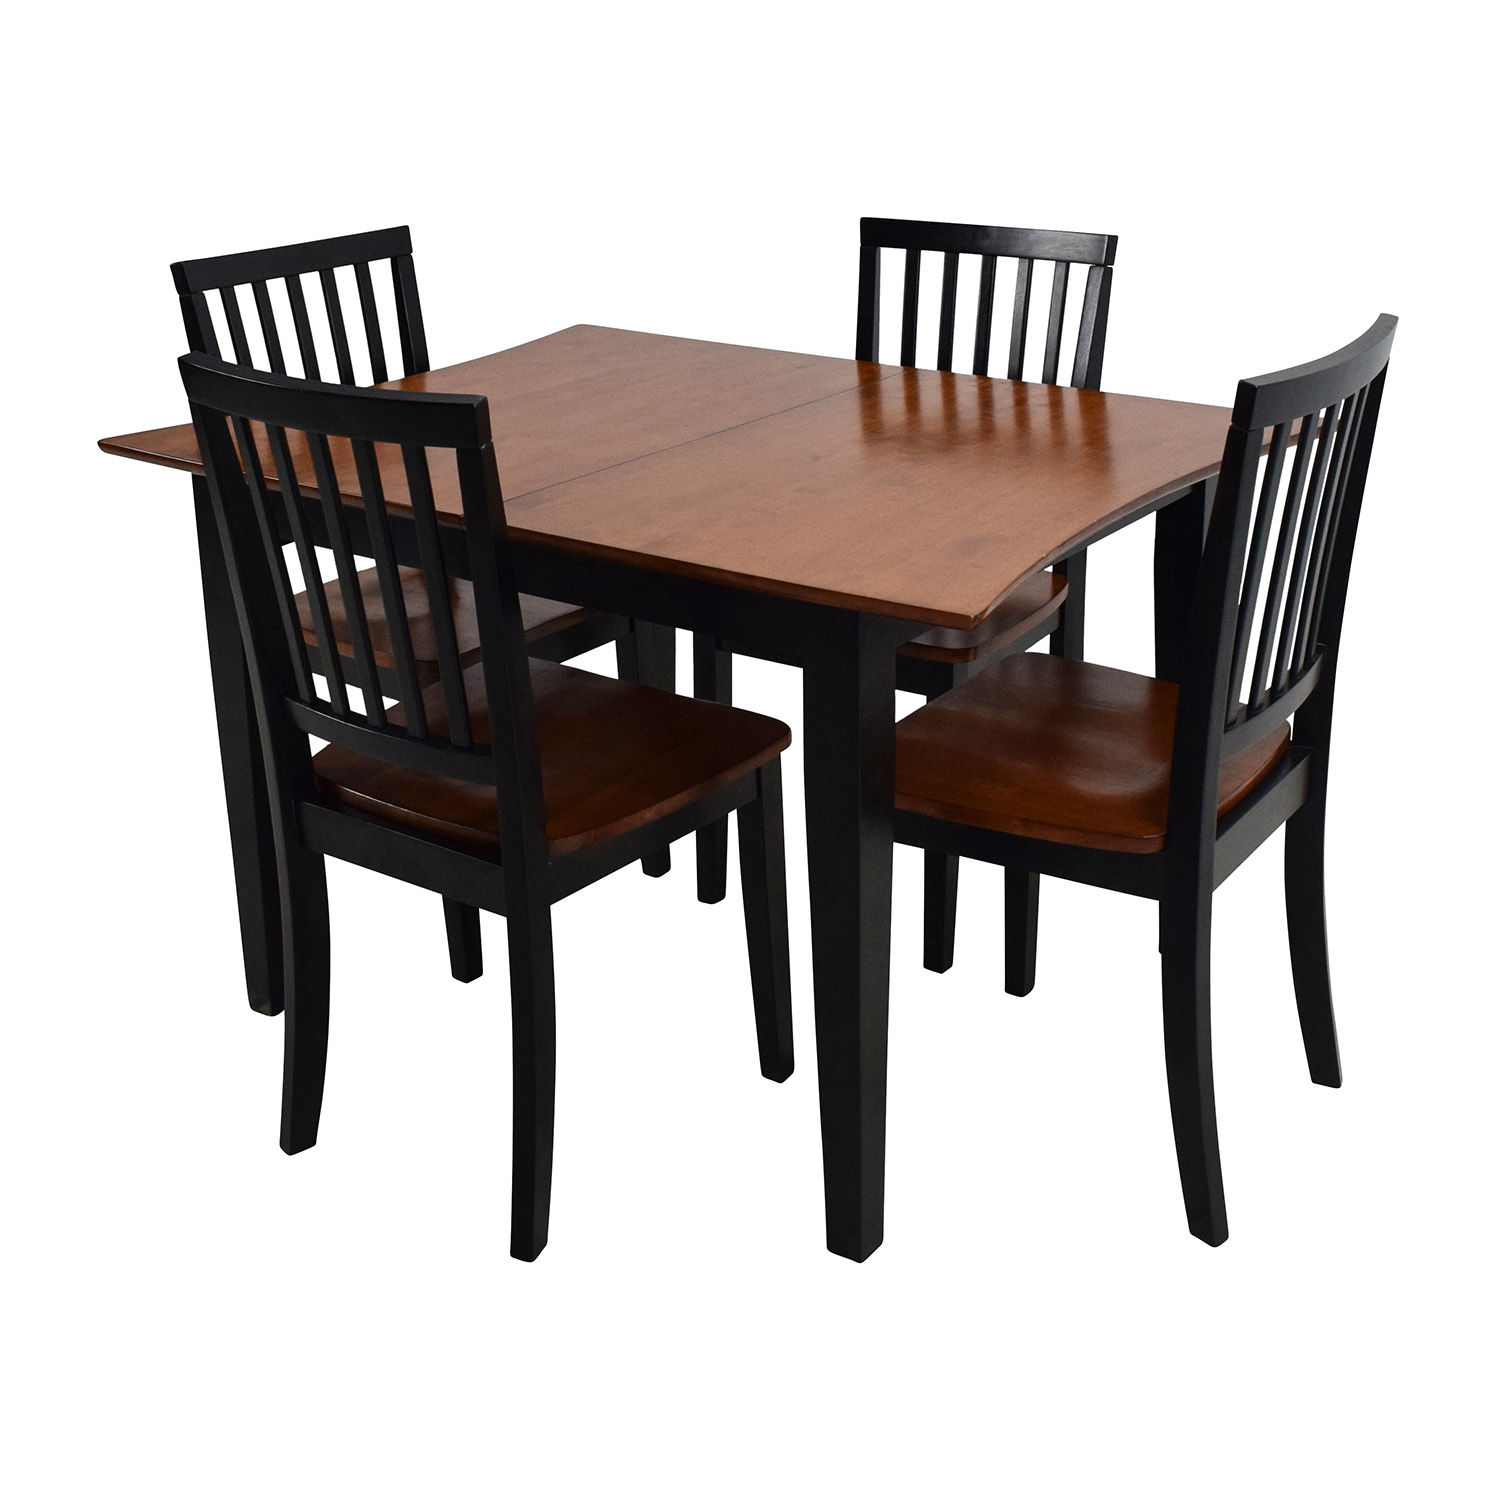 Emejing bobs furniture tables photos for Buy furniture for cheap